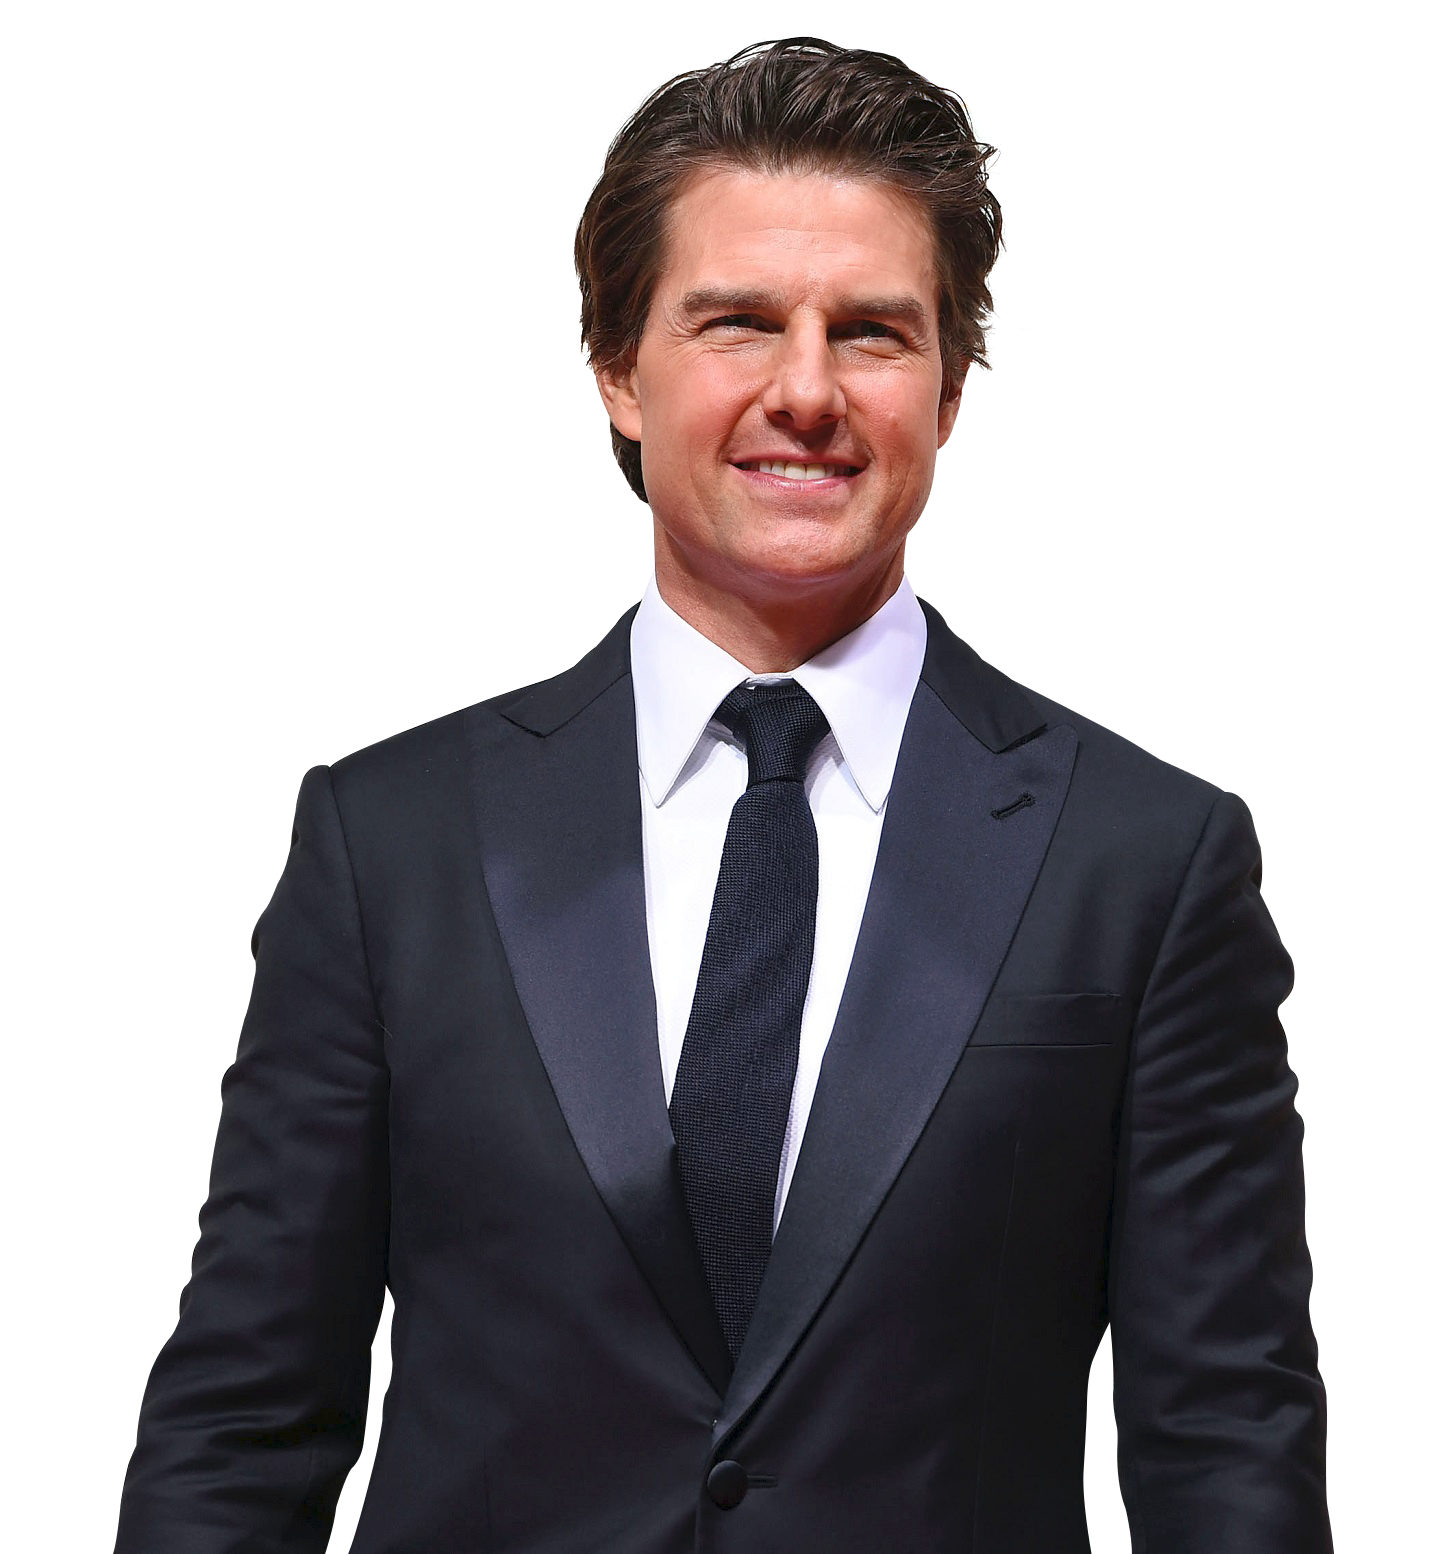 Tom Cruise Png - Tom Cruise Png Transparent Image, Transparent background PNG HD thumbnail